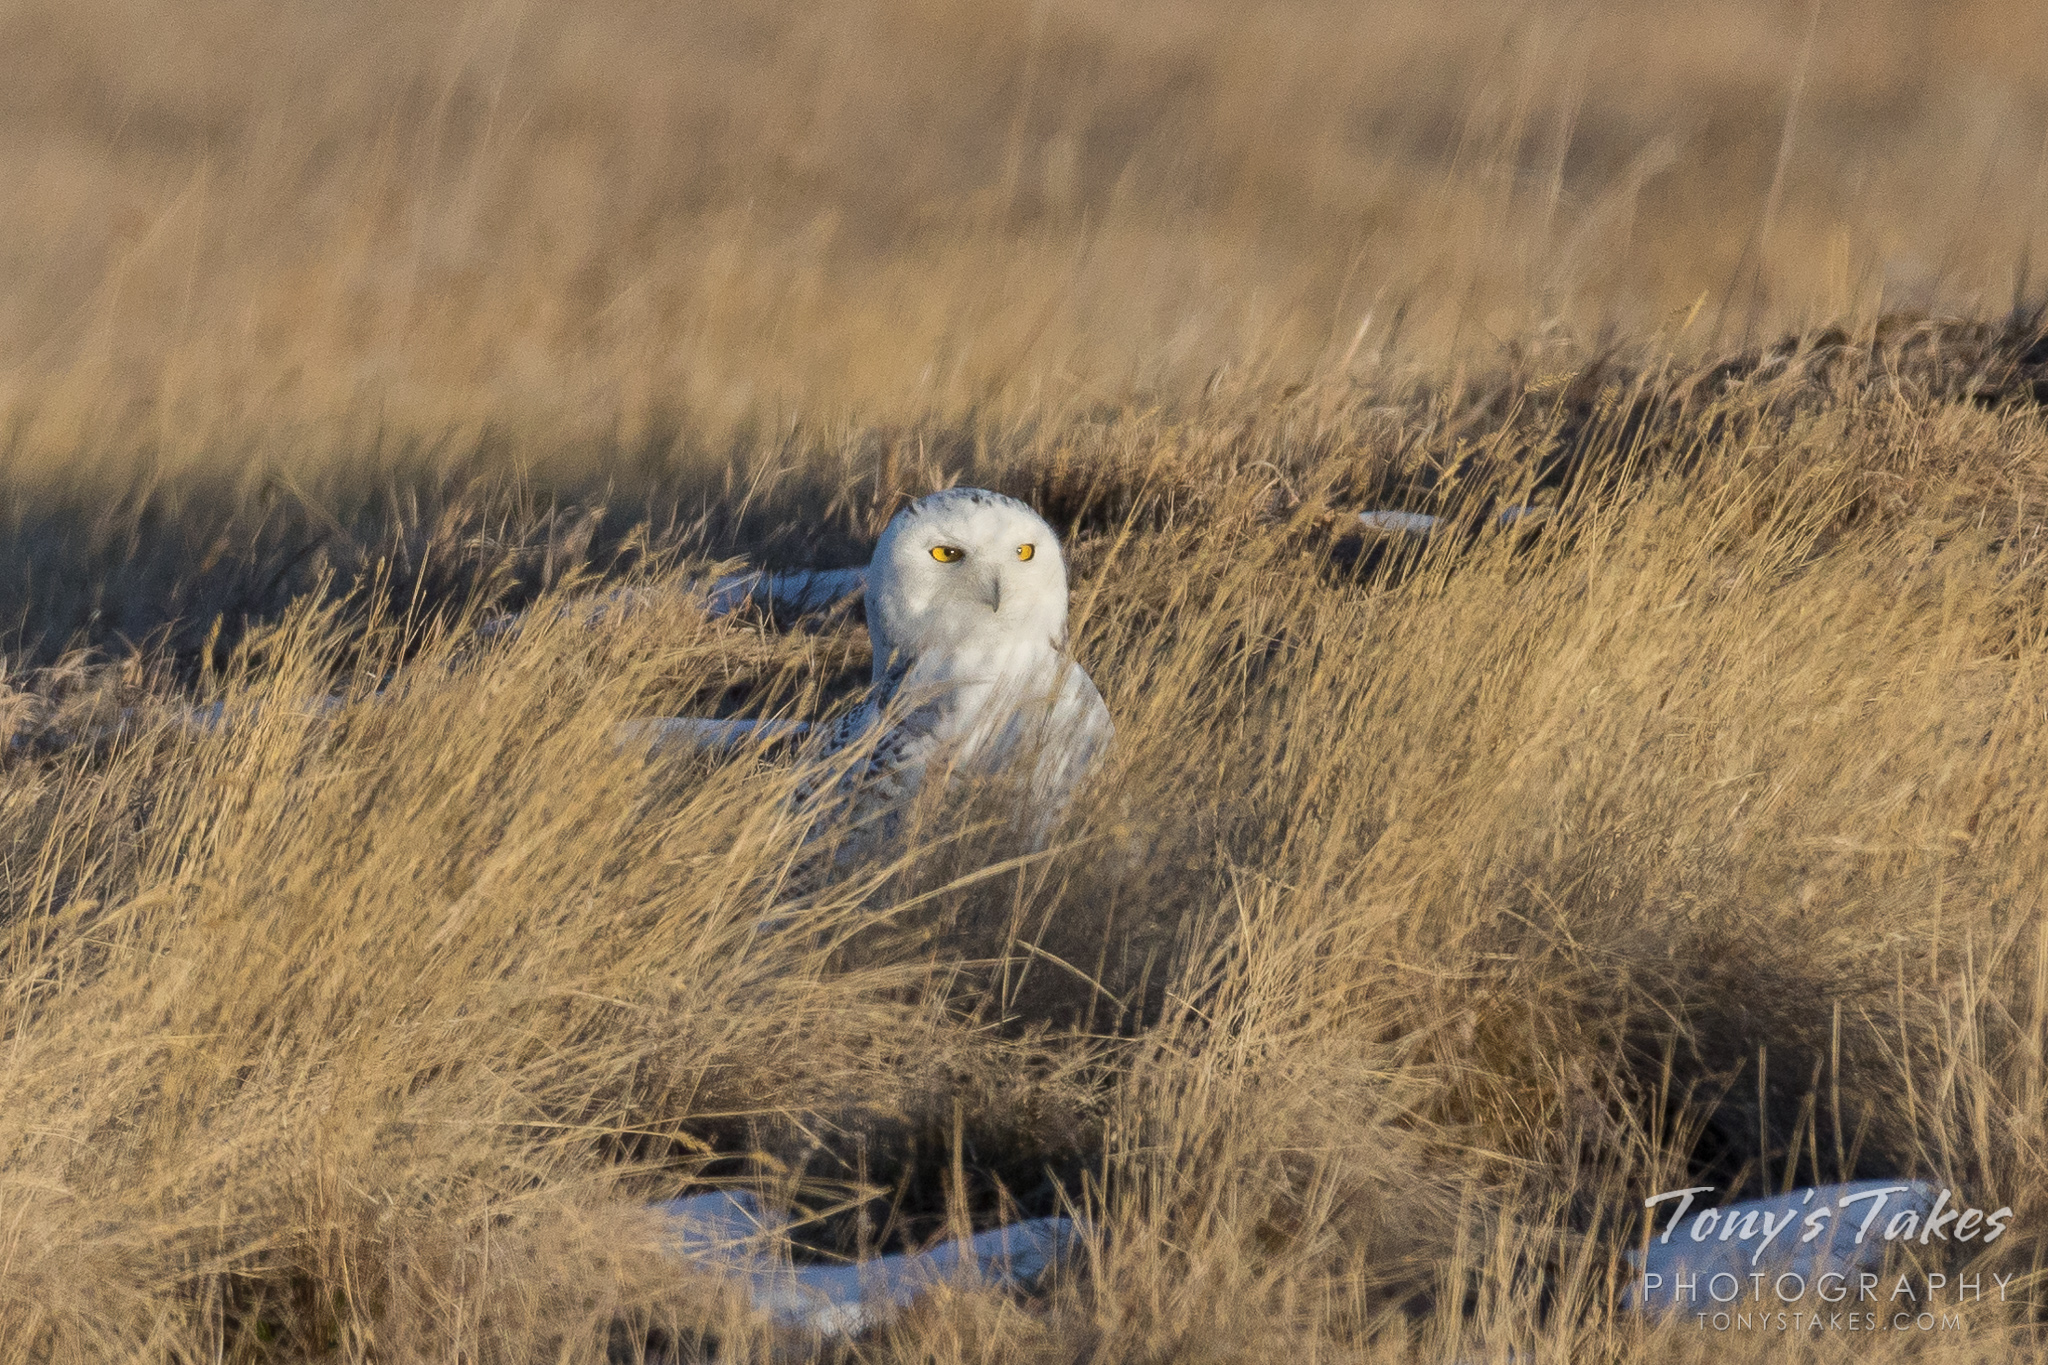 Rare Snowy Owl pays a visit to suburbs of Denver